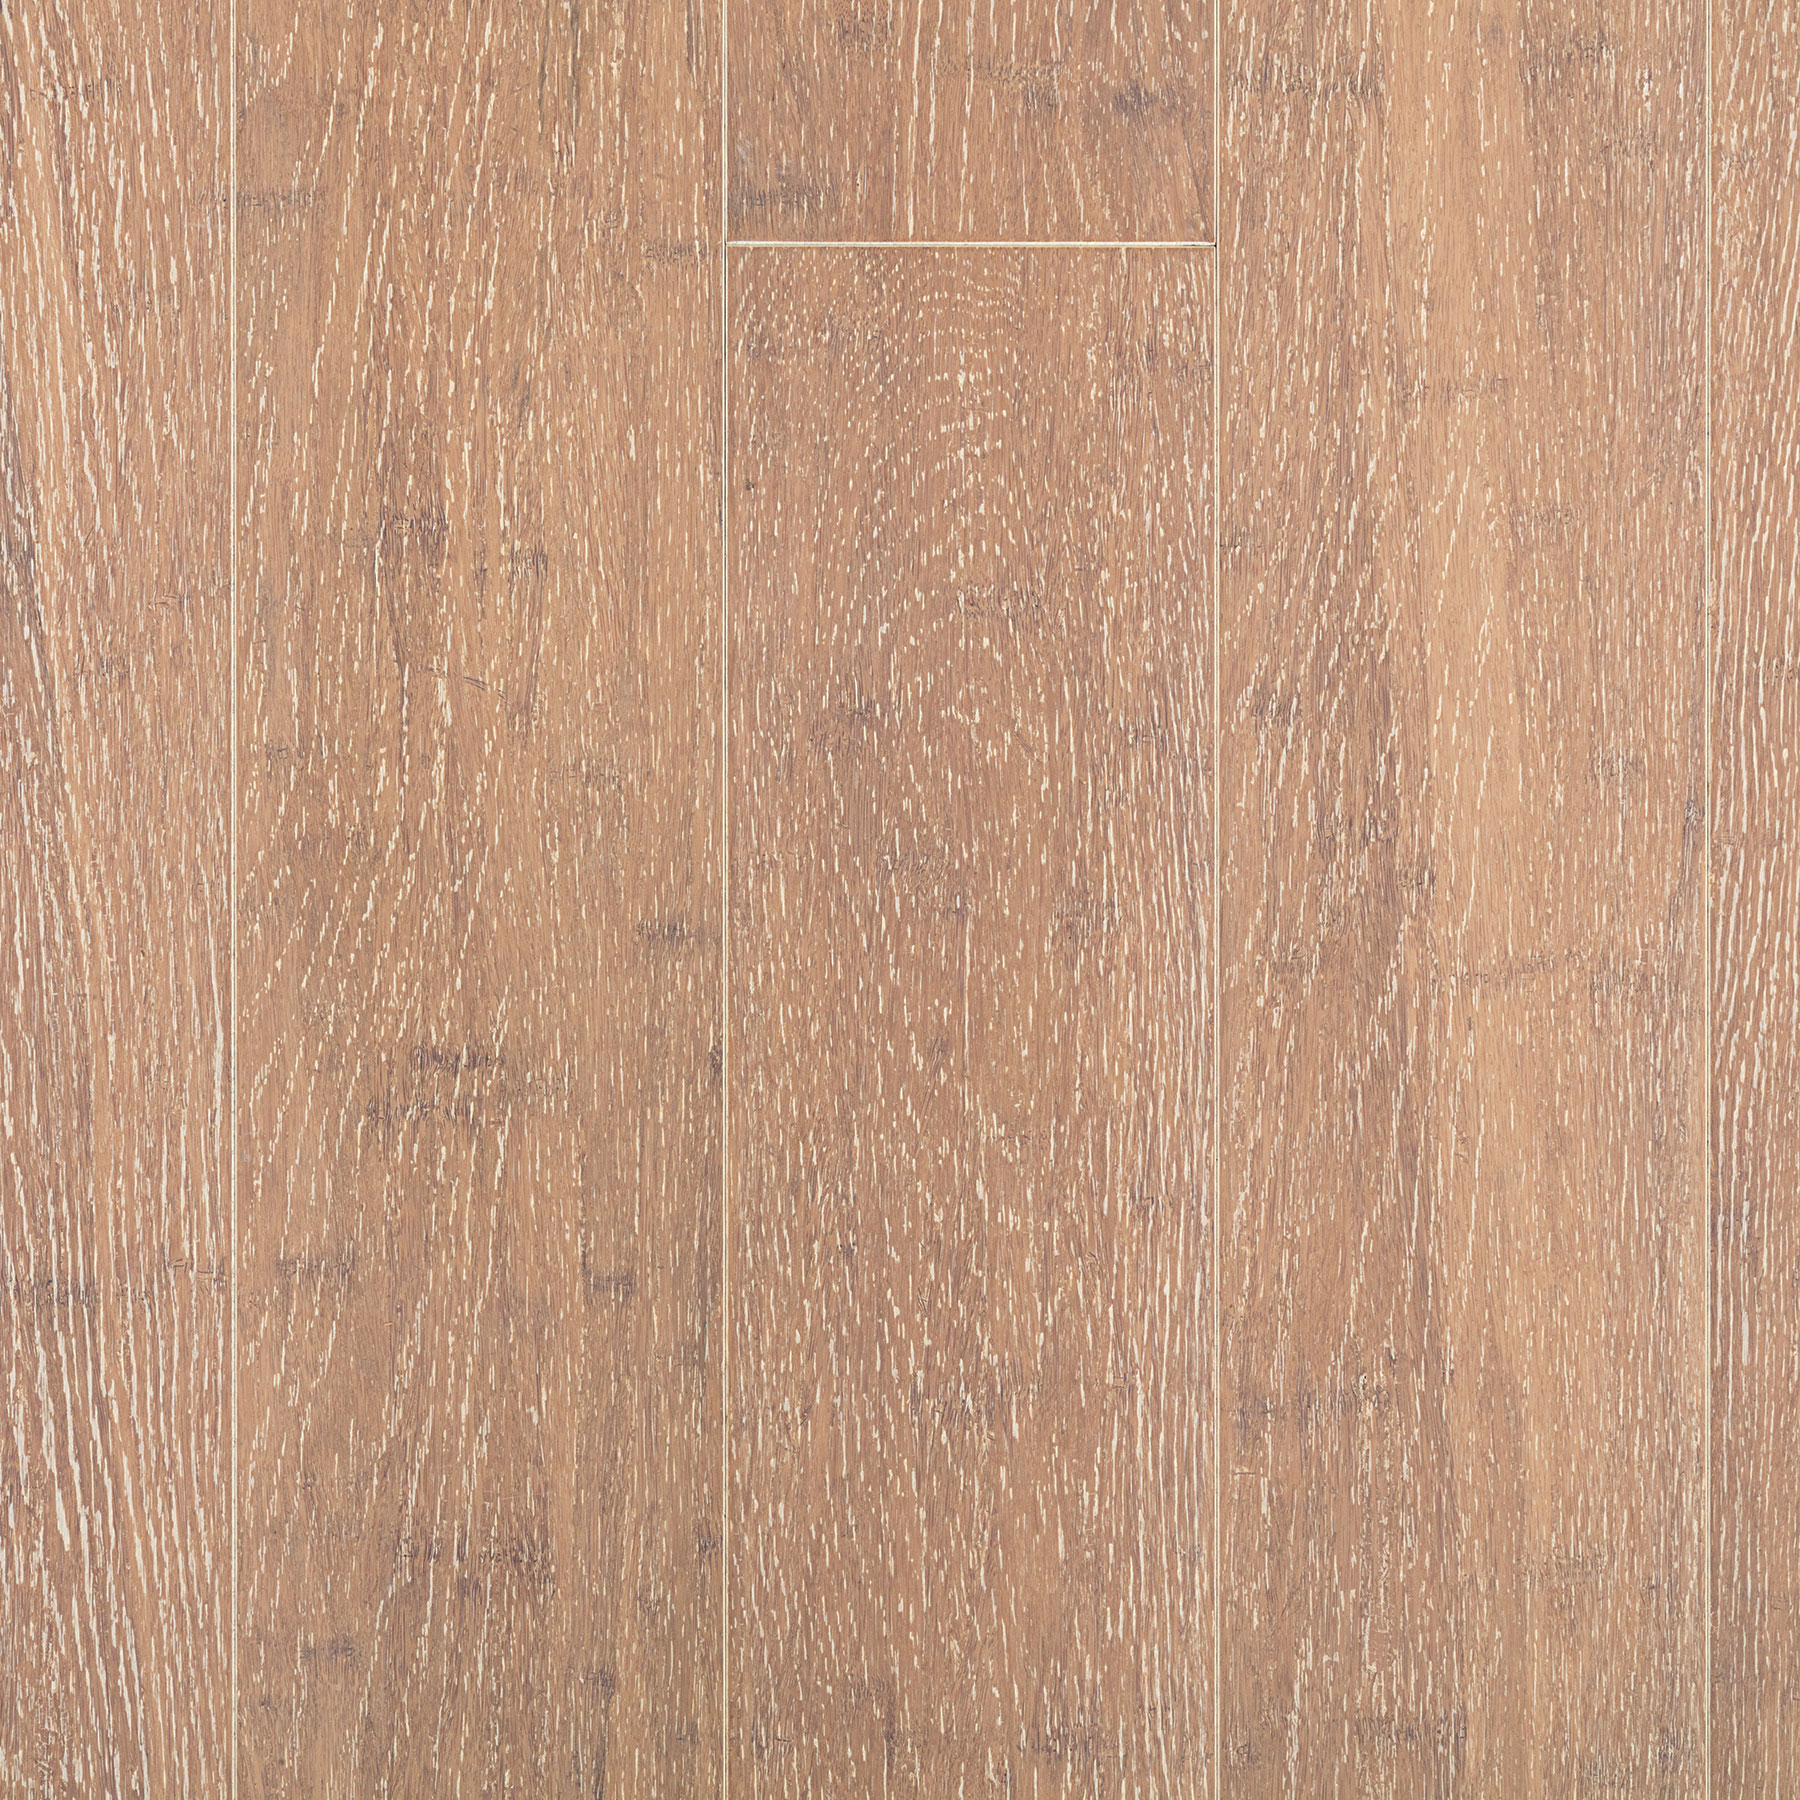 structure floor bamboo strand flooring indoor carbonized woven product lbinpkdmbovf china color